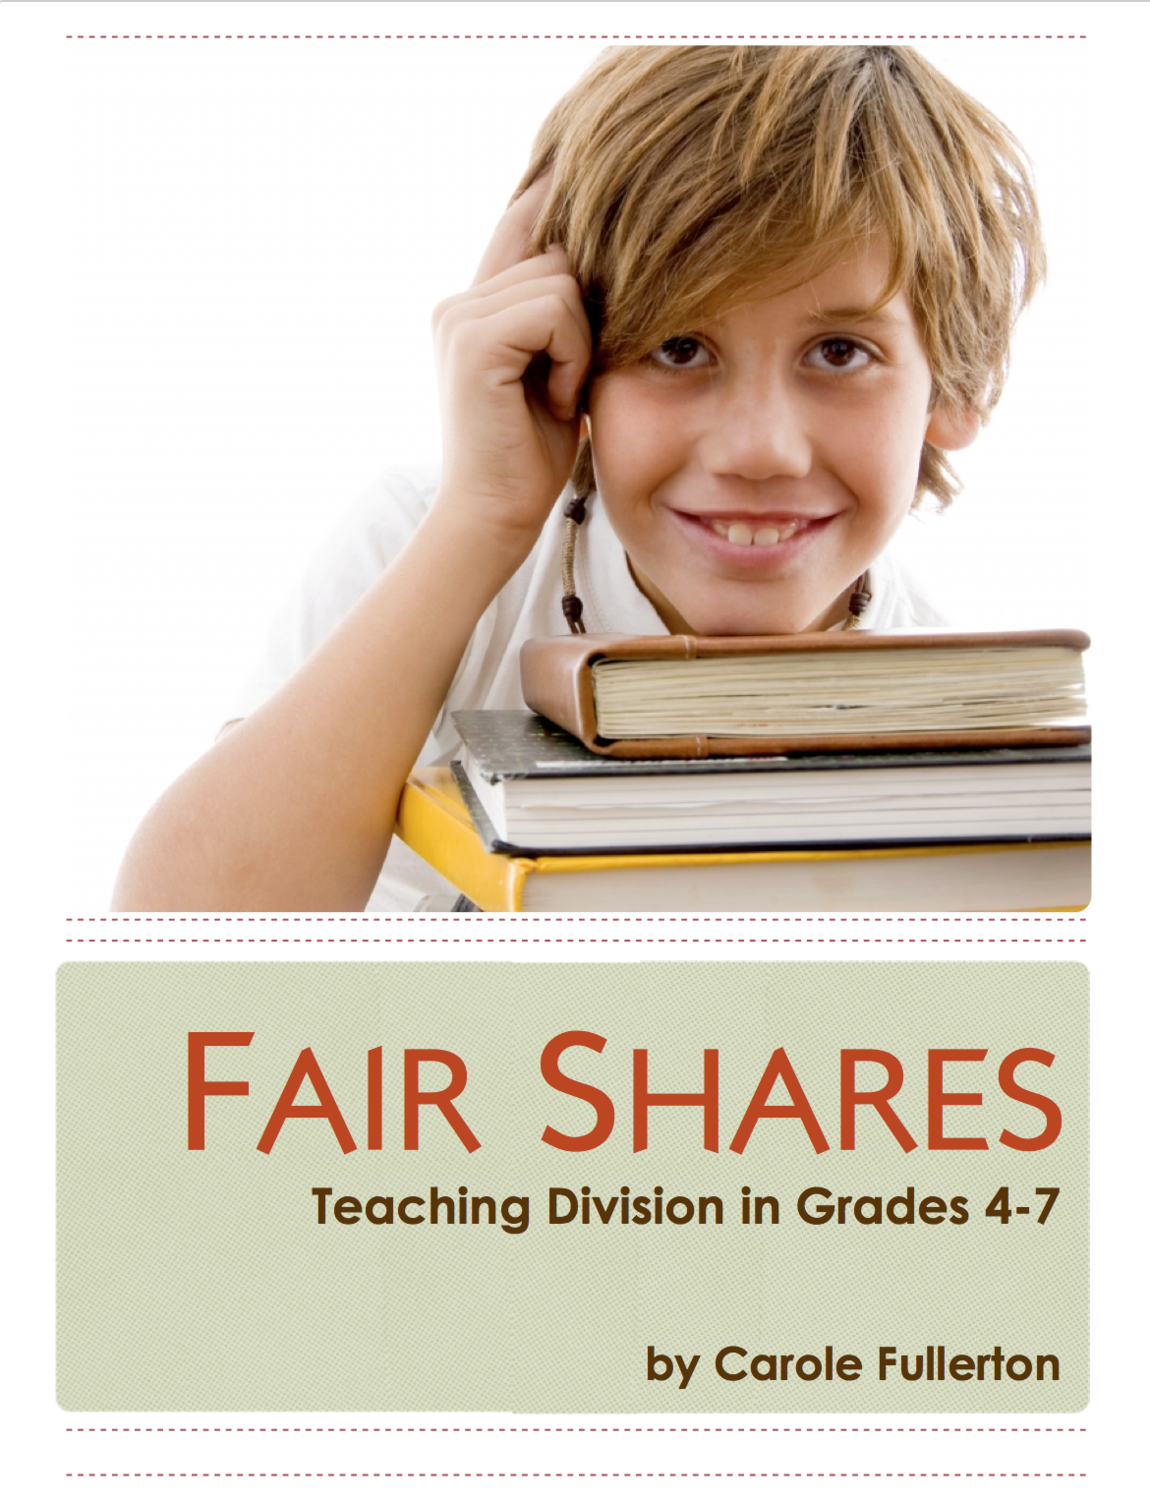 Fair Shares: Teaching Division in Grades 4-7